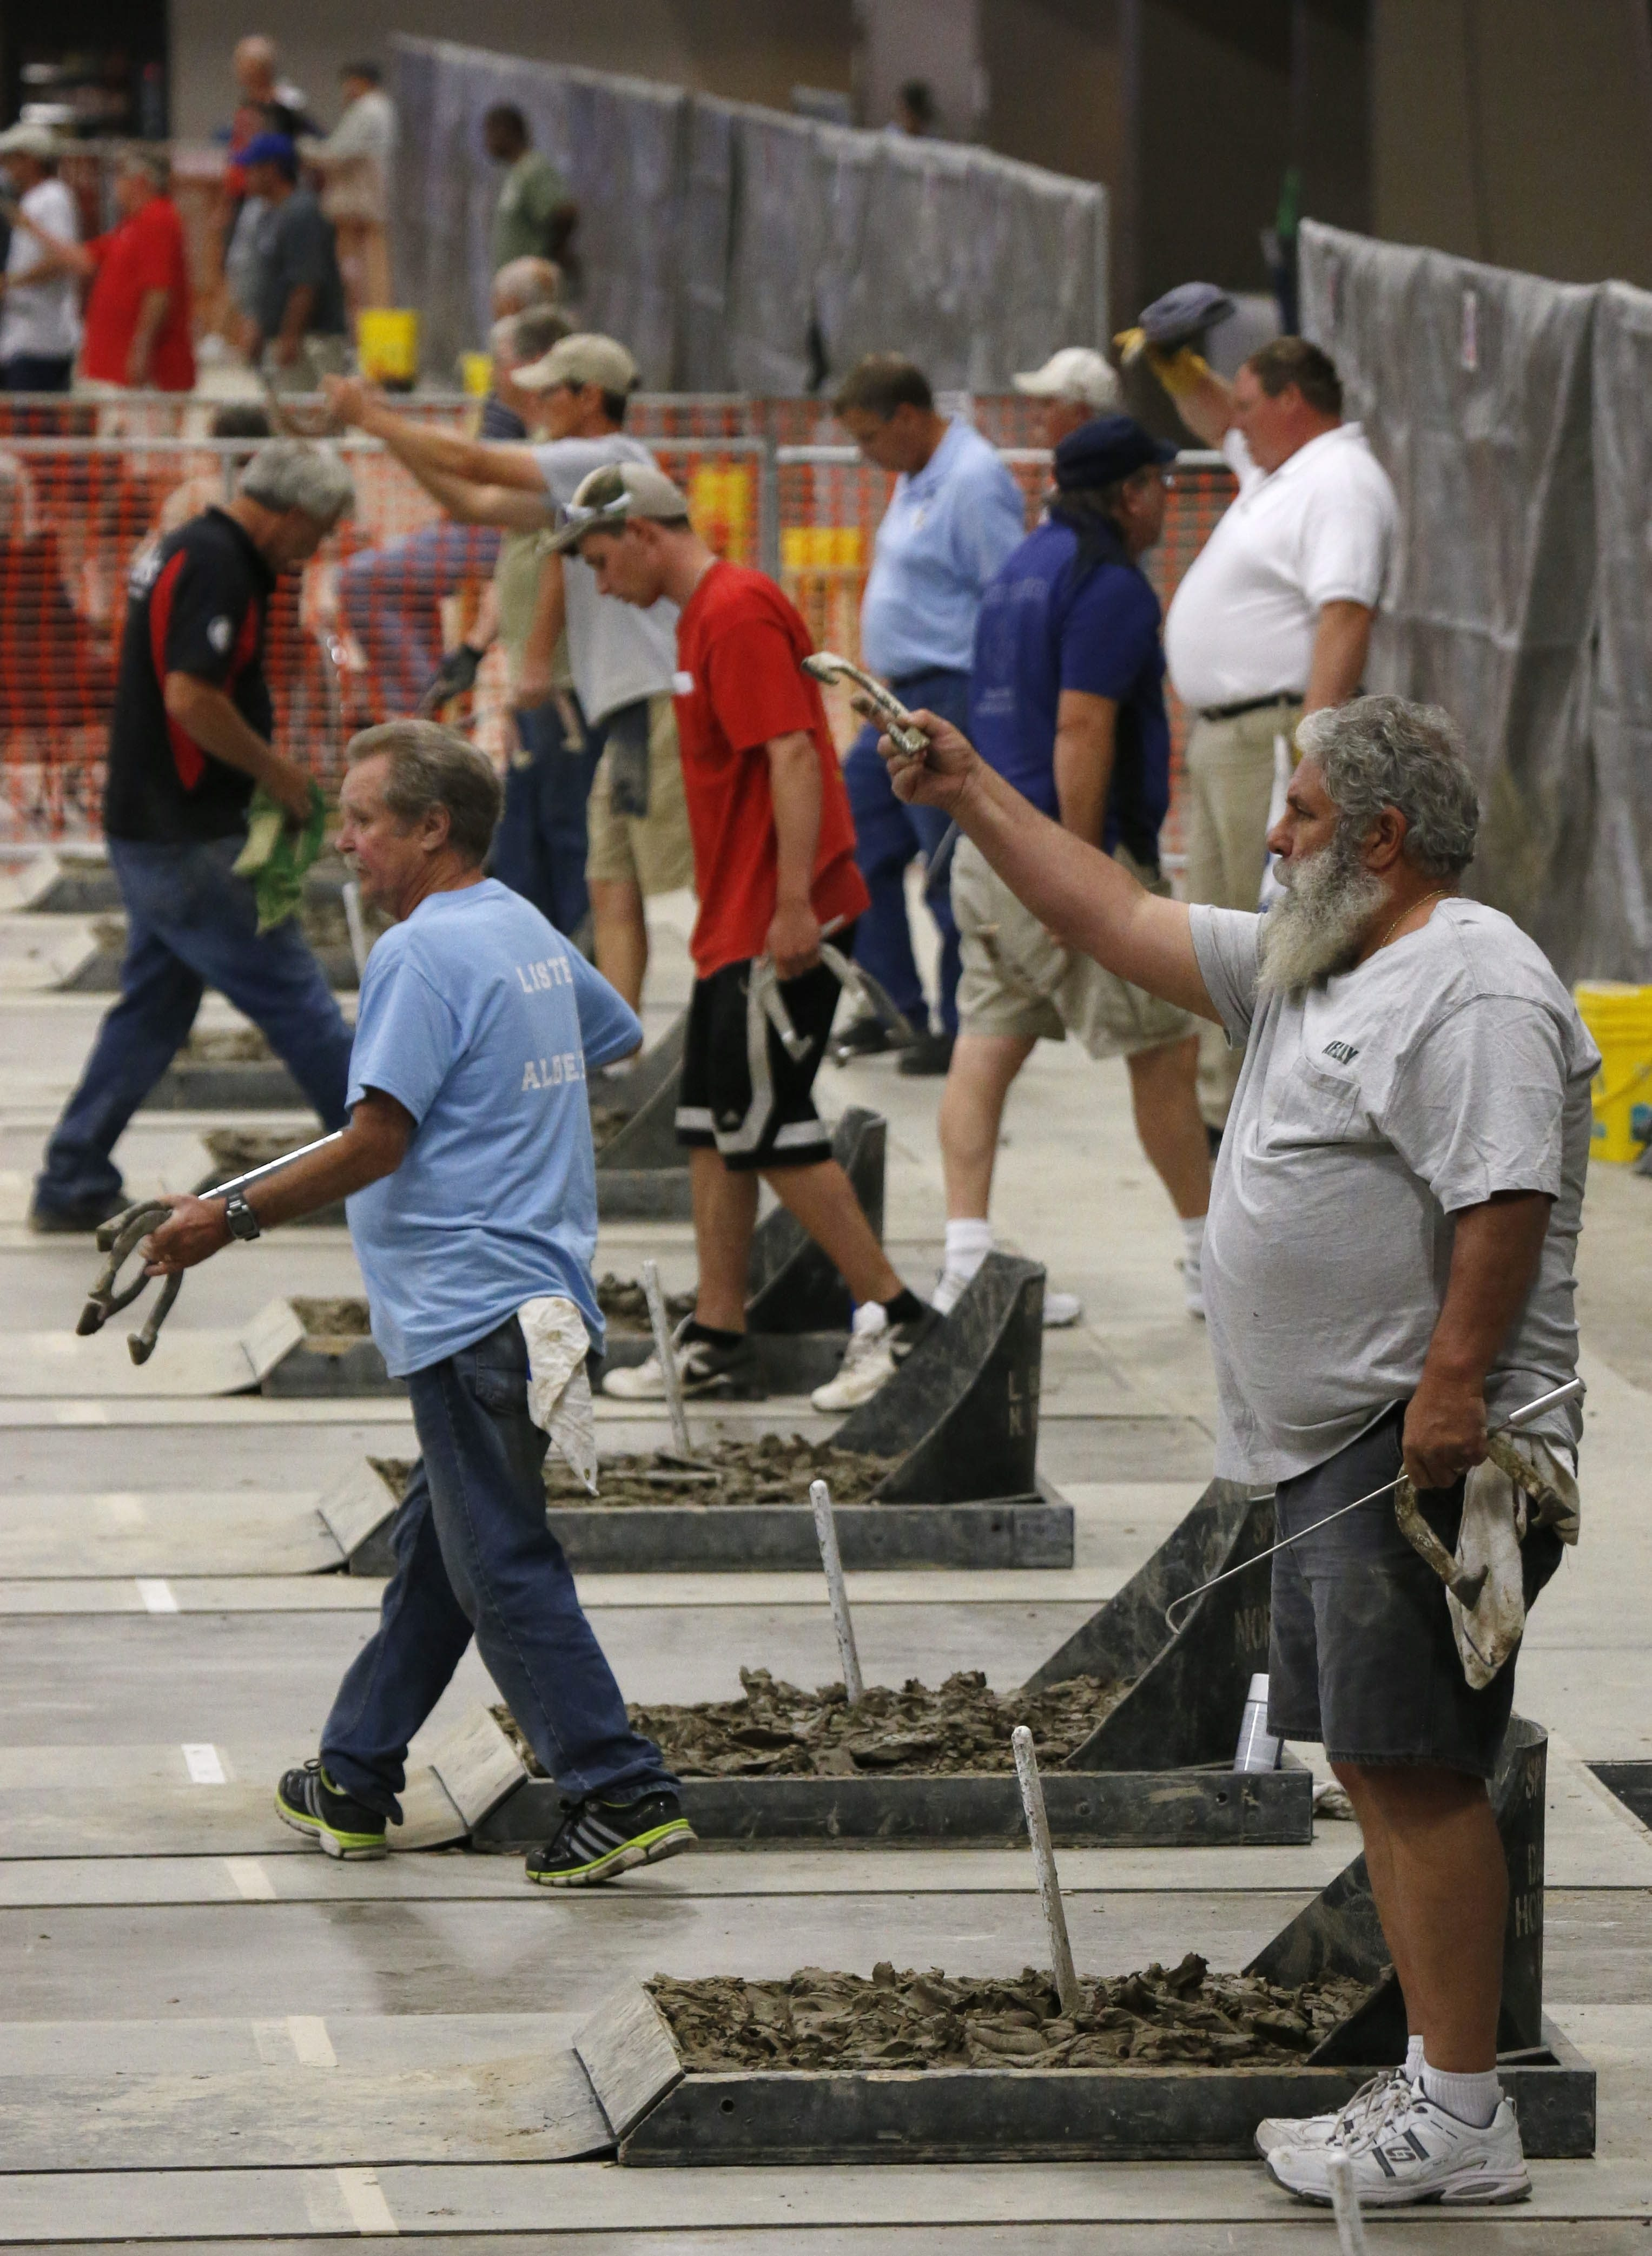 The Event Center at Hamburg Fairgrounds hosts the World Horseshoe Pitching Championships, where competition will continue until Saturday.